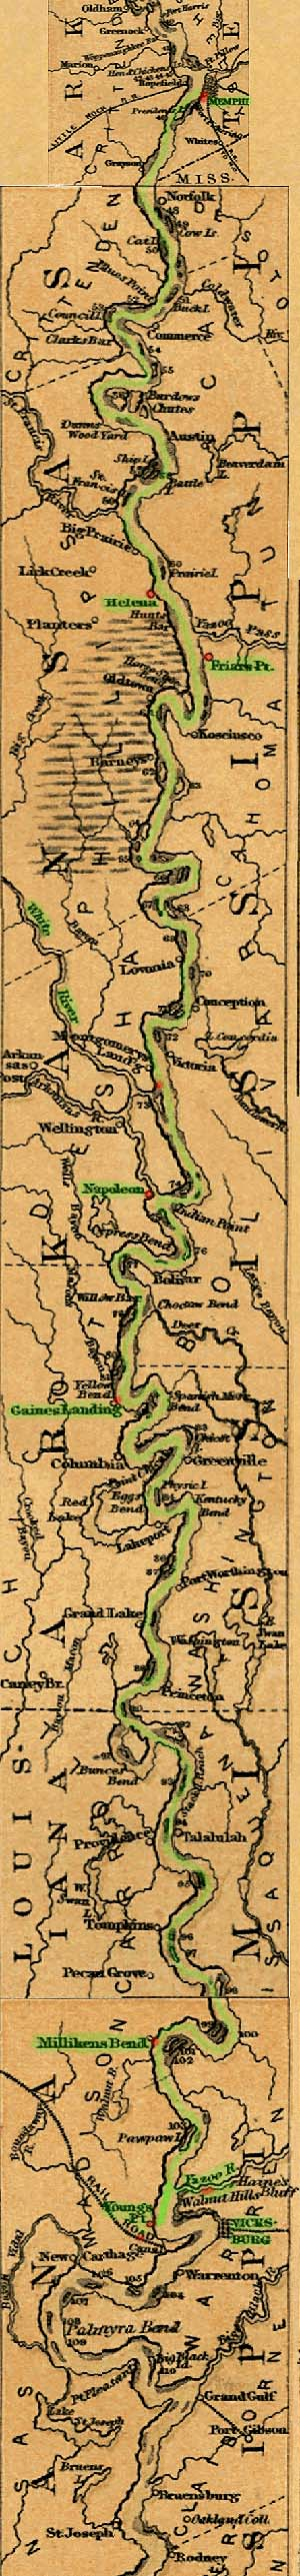 map of ohio river and mississippi river. the Ohio River to Gulf of